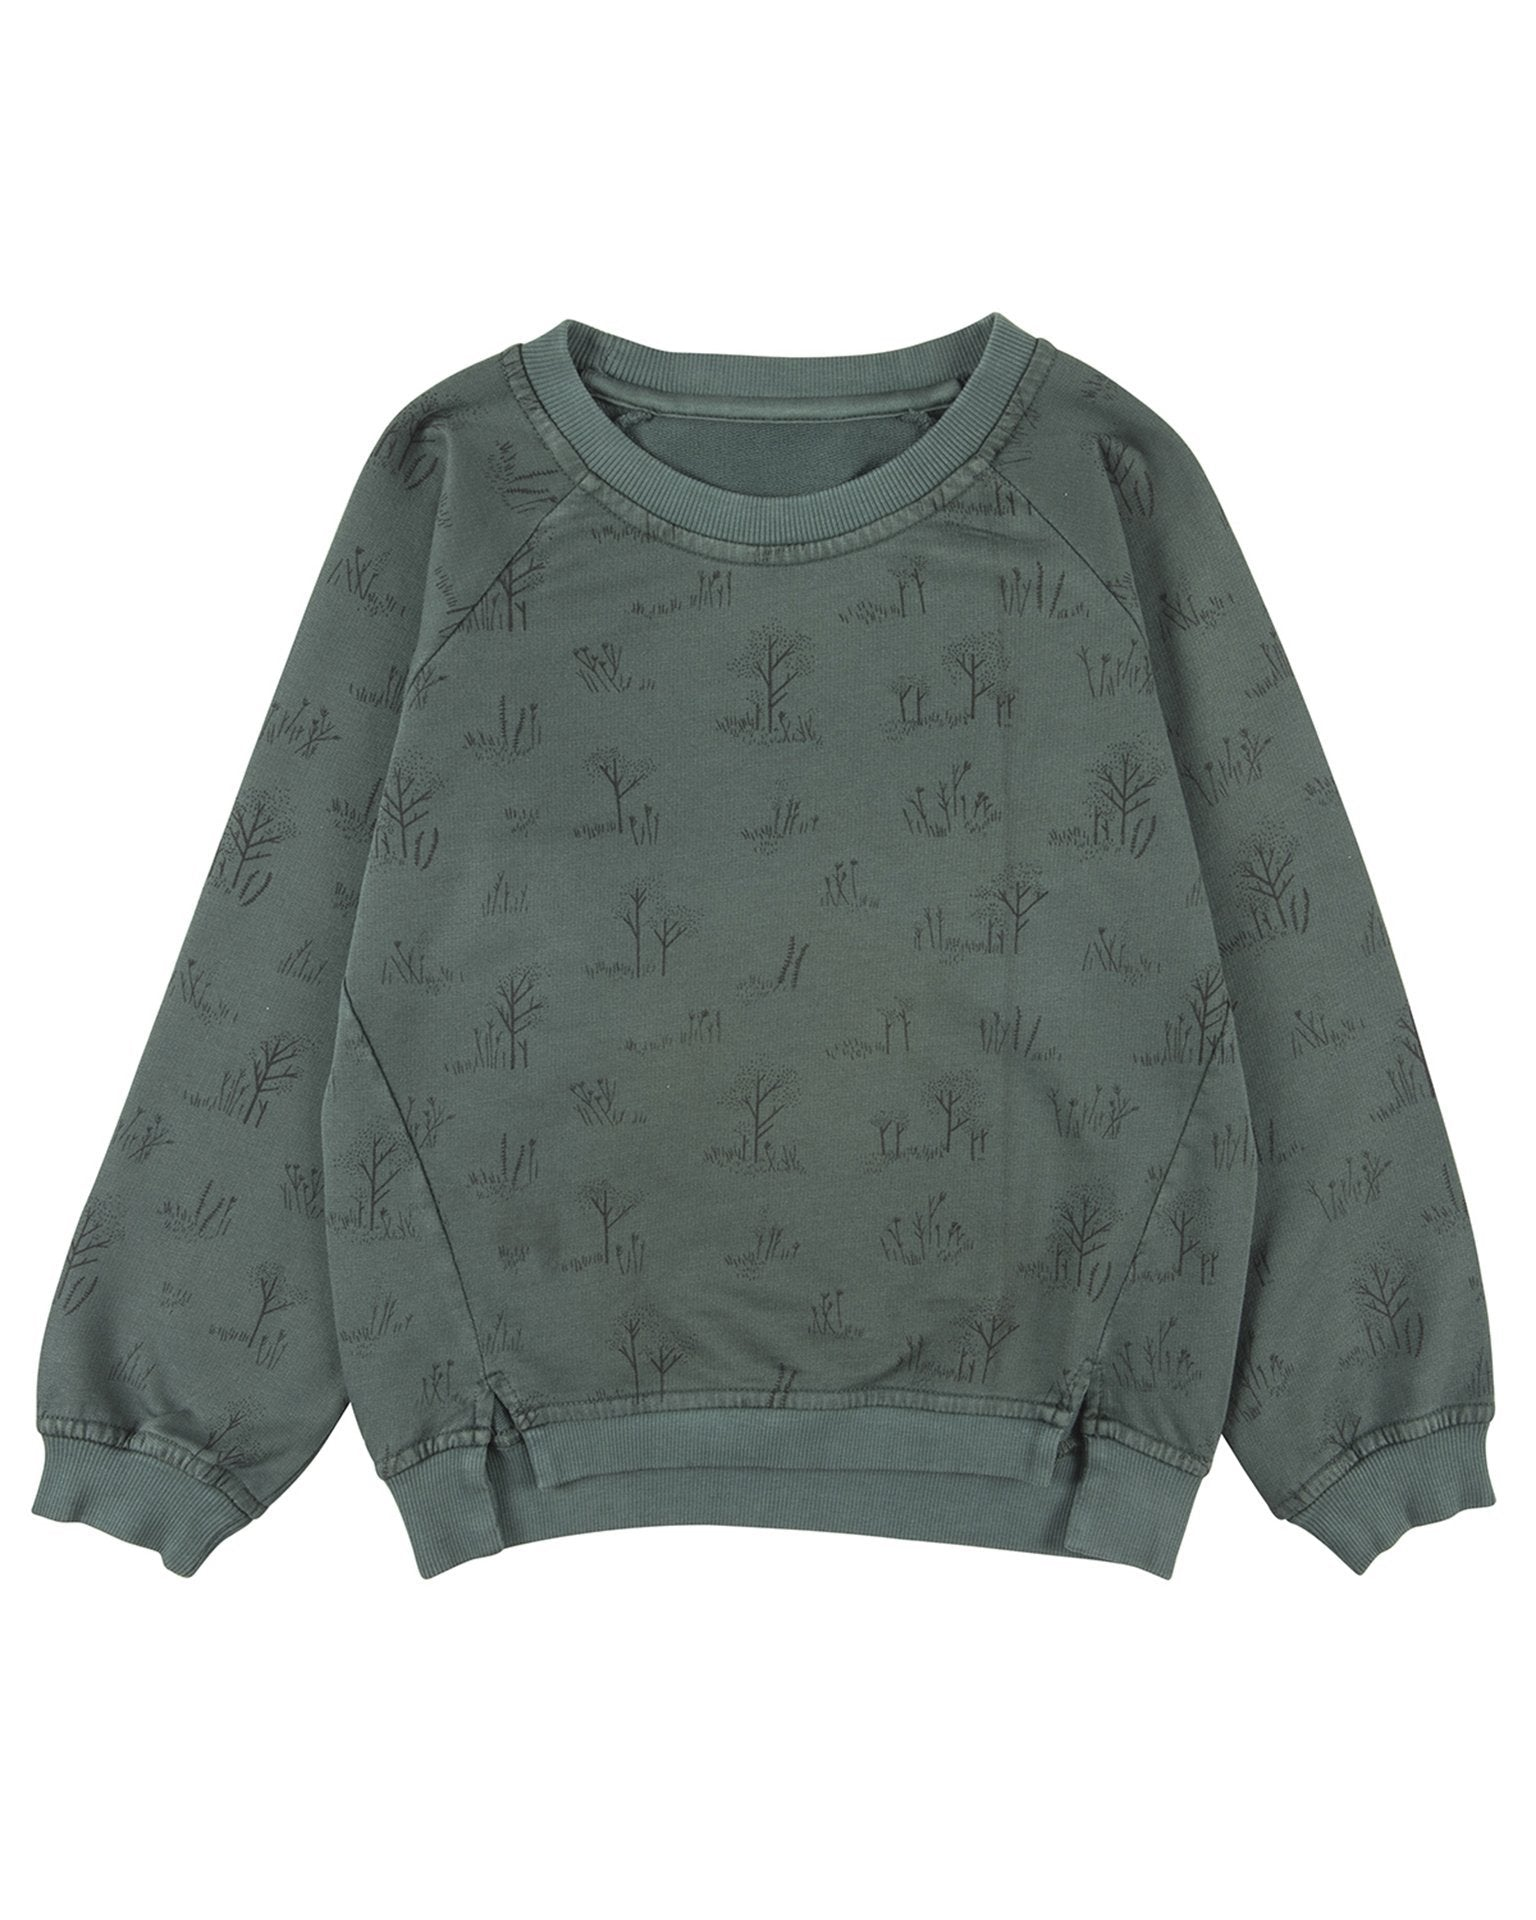 Little red caribou girl the tundra oversized sweatshirt in garden topiary